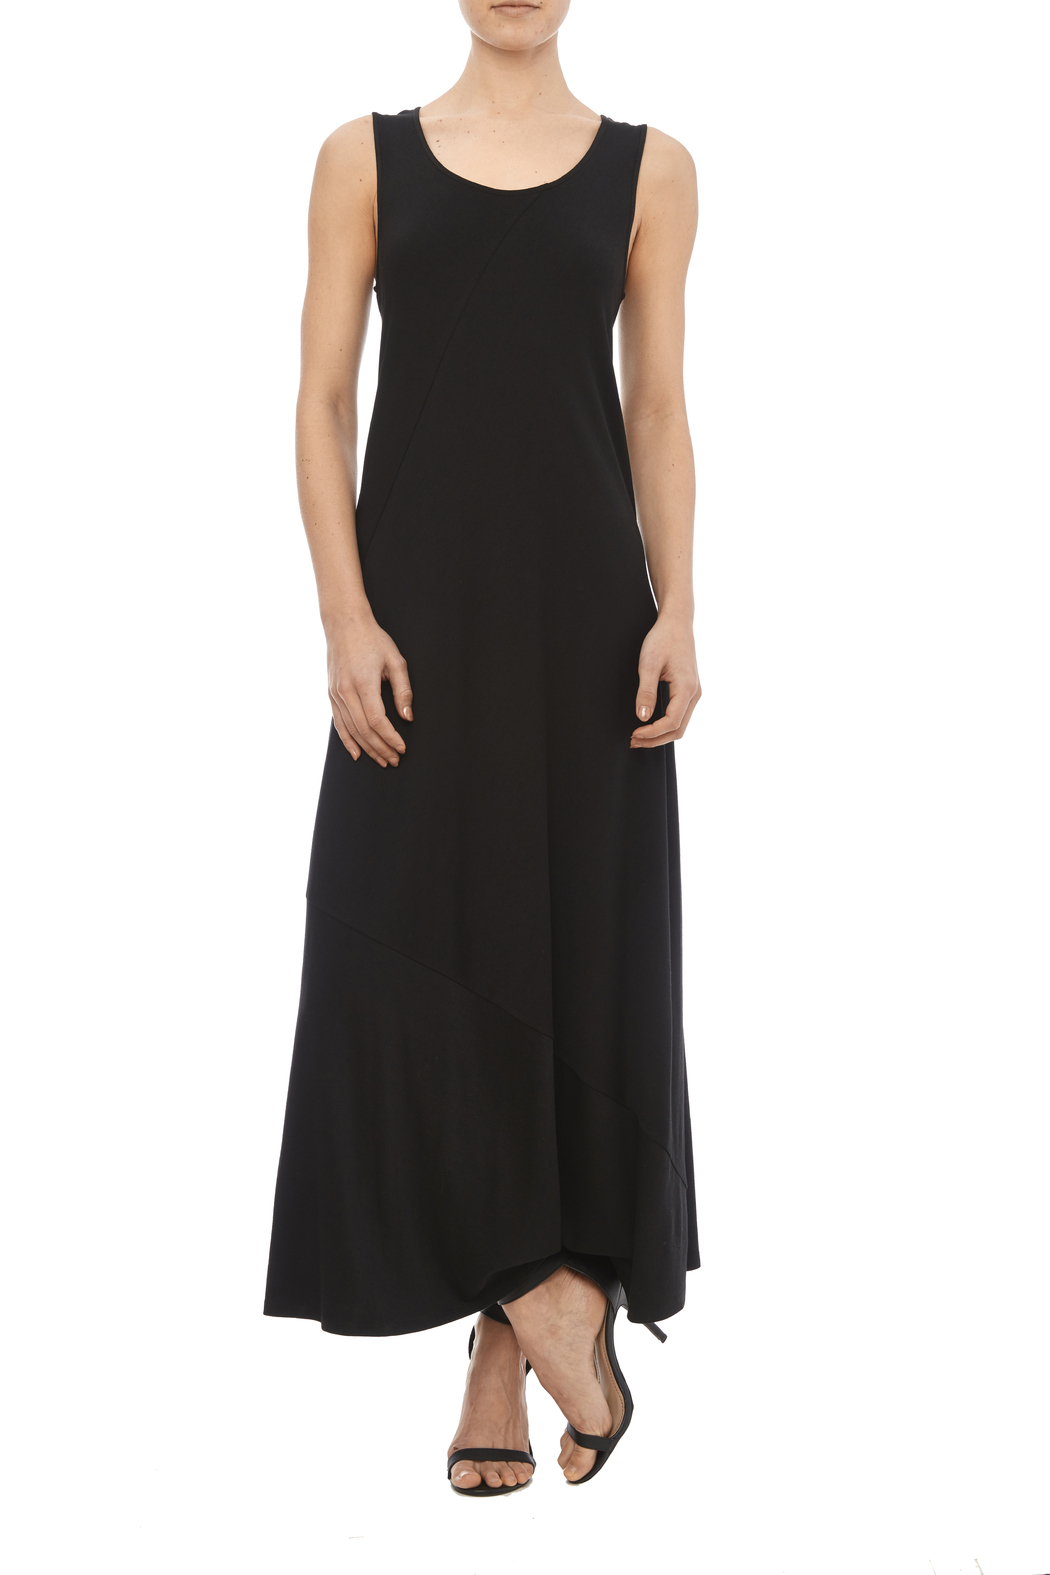 Chalet Black Tank Dress - Main Image